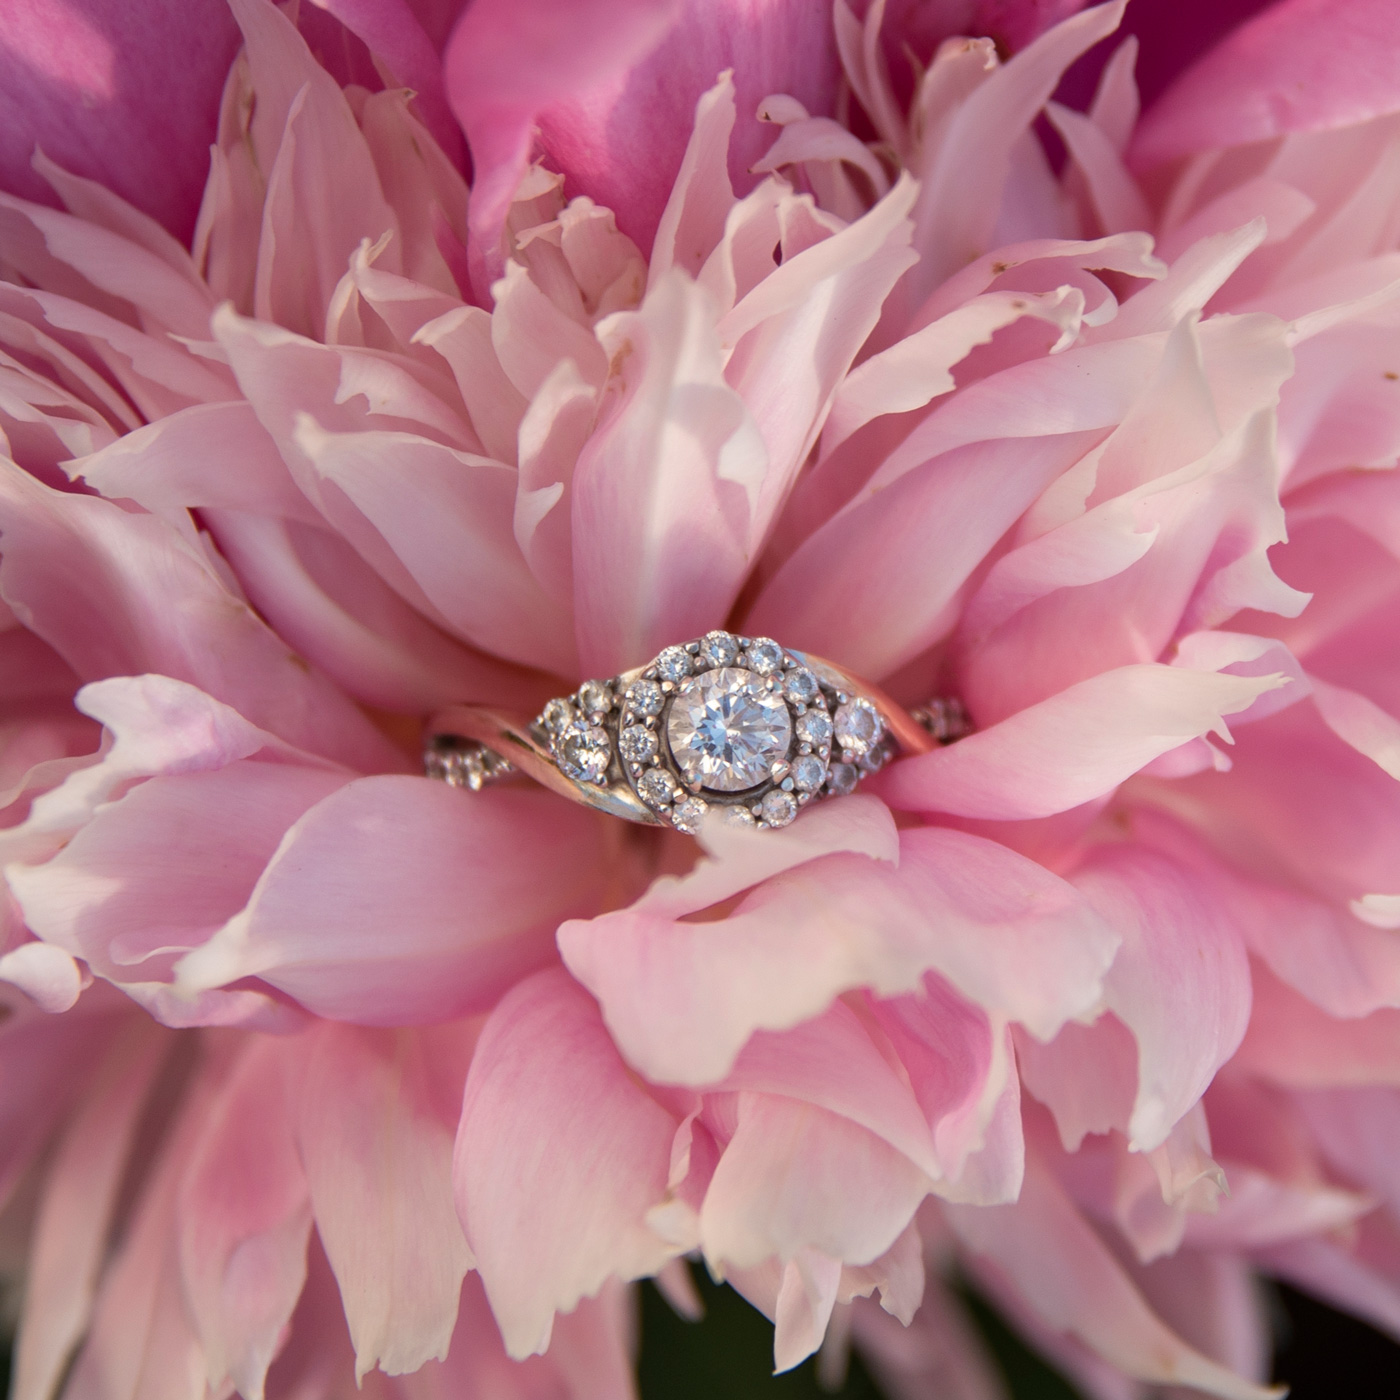 Gorgeous engagement ring with a pink peony